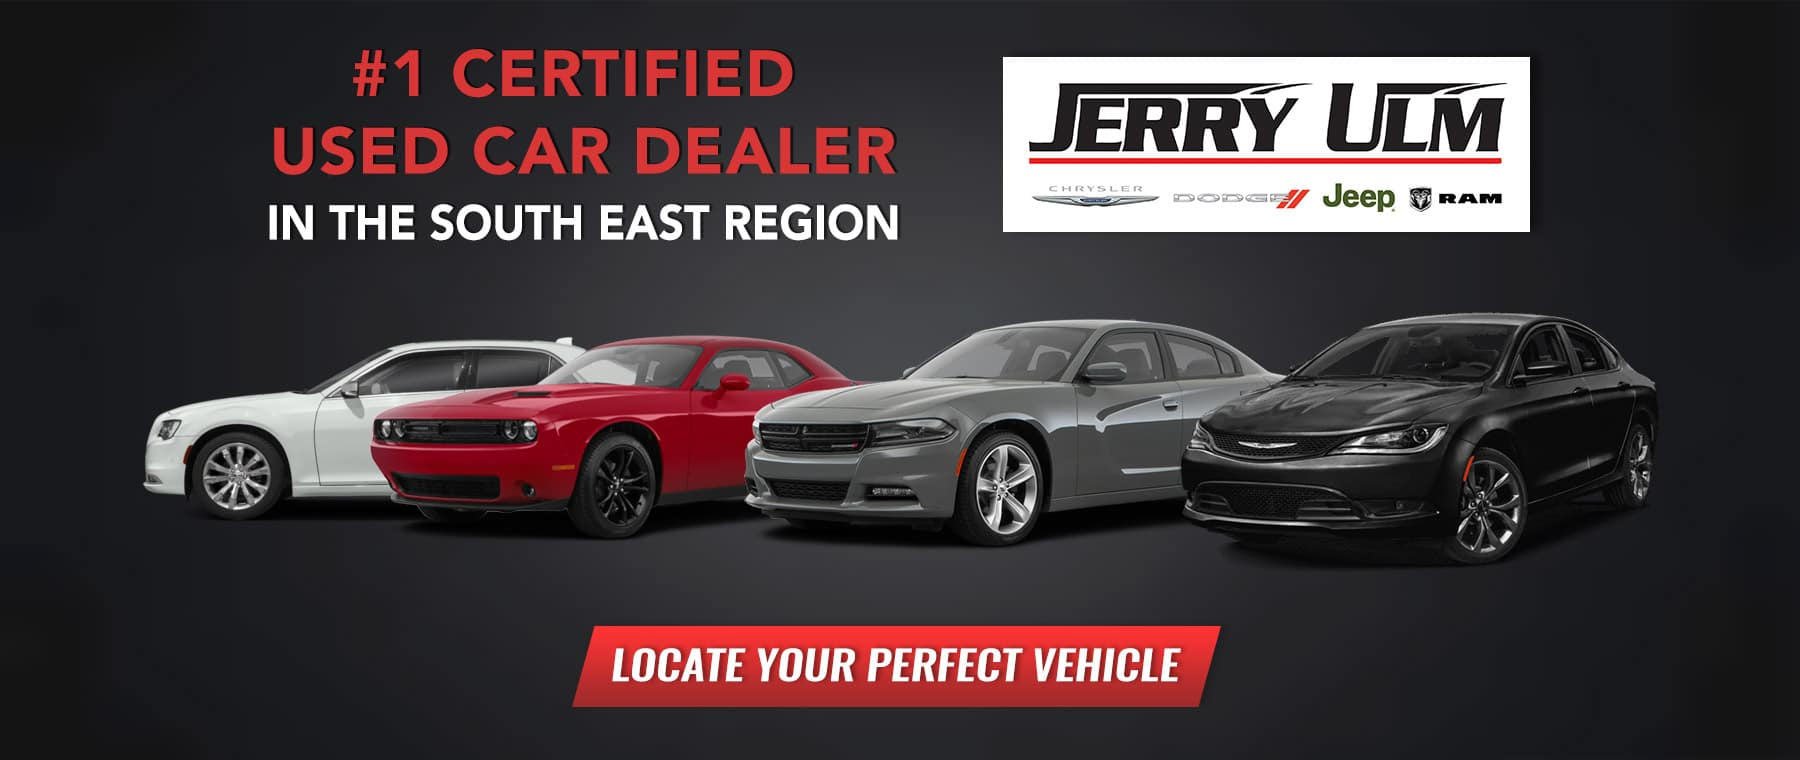 #1 Certified Used Dealer in the South East Region